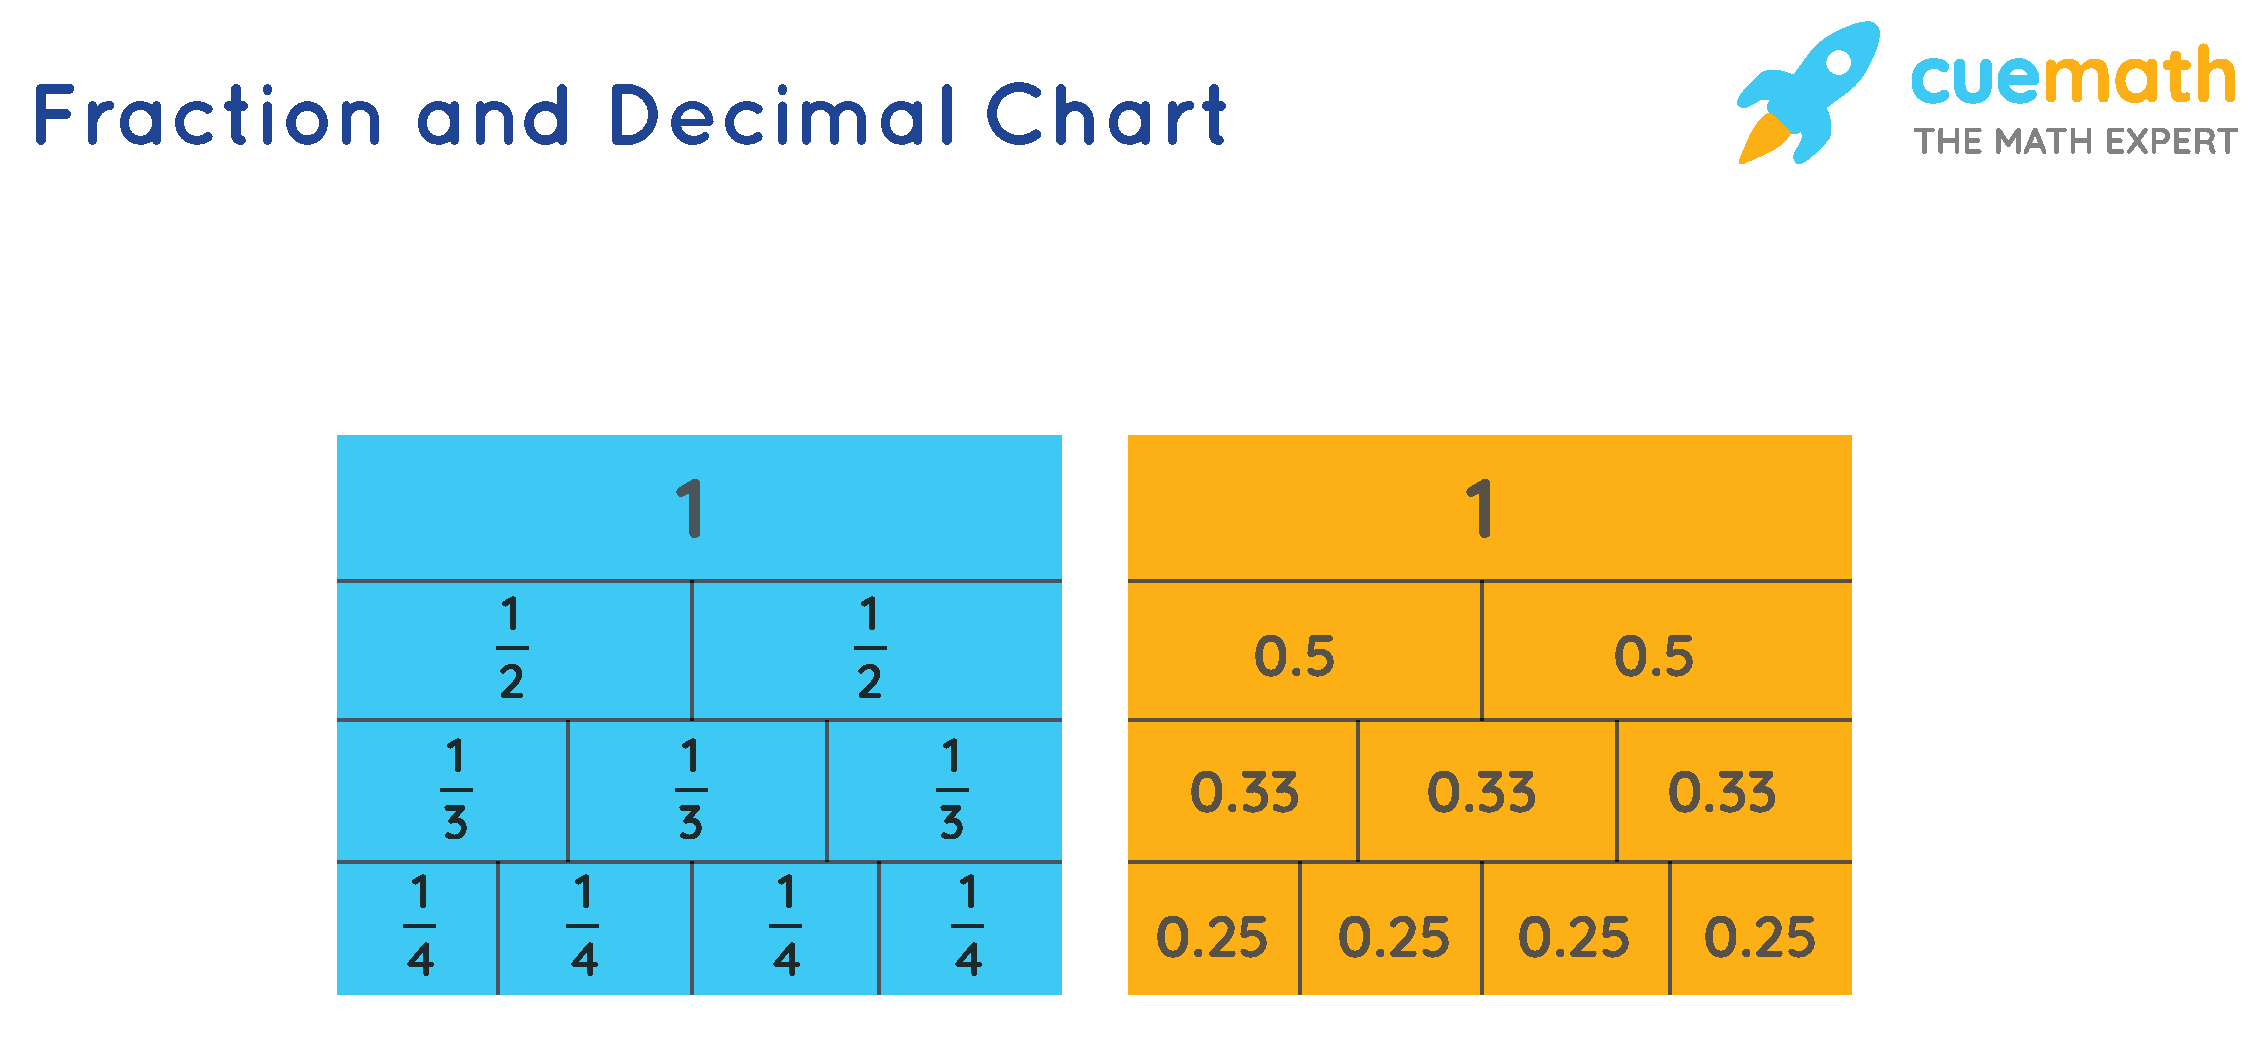 Fraction and Decimal Chart